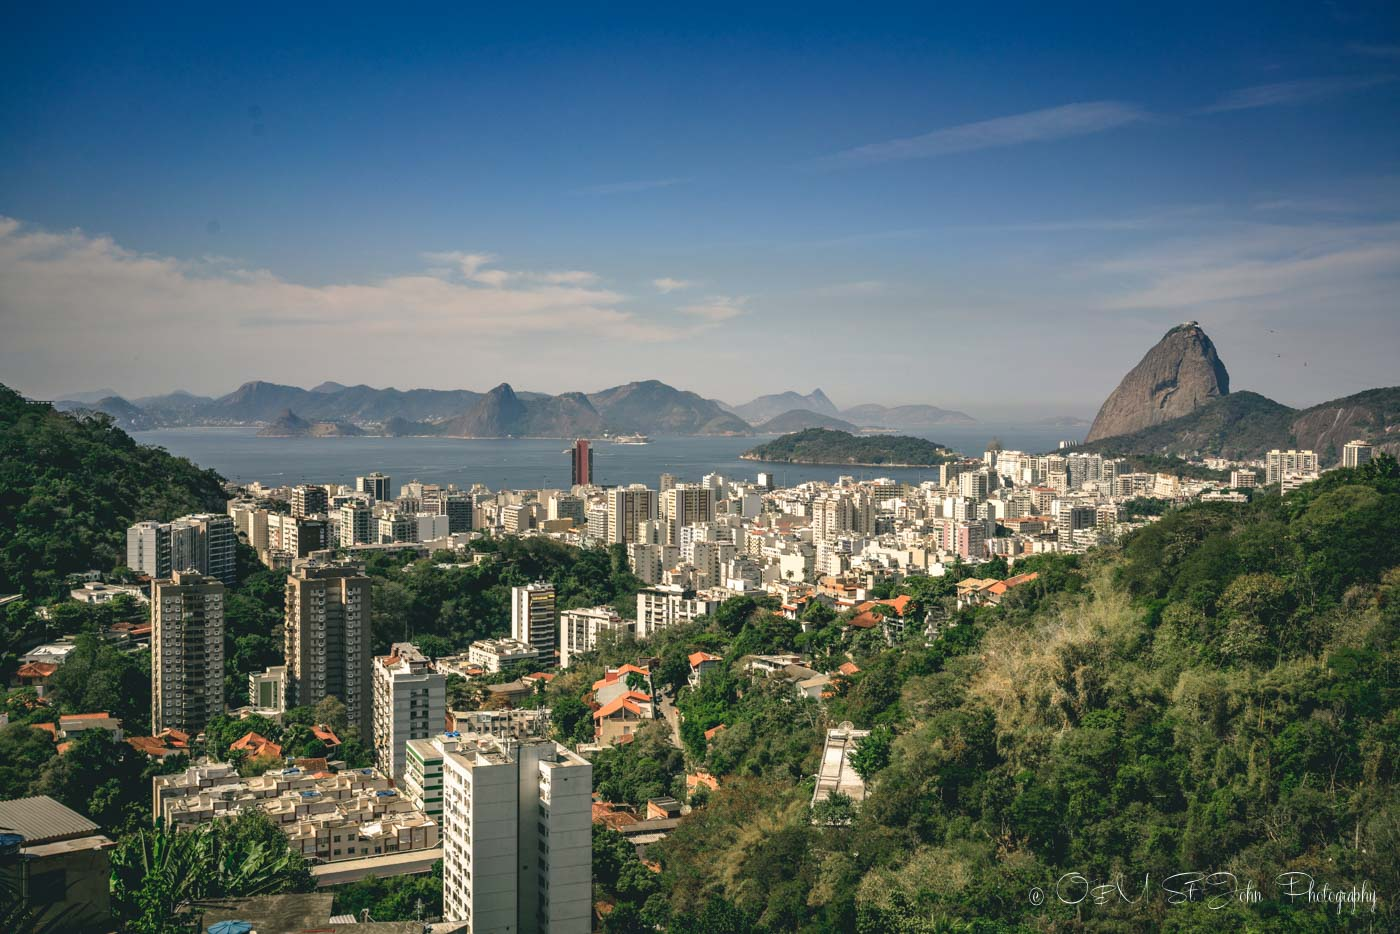 Hike to Christ the redeemer: Be careful getting the right van back to the city!